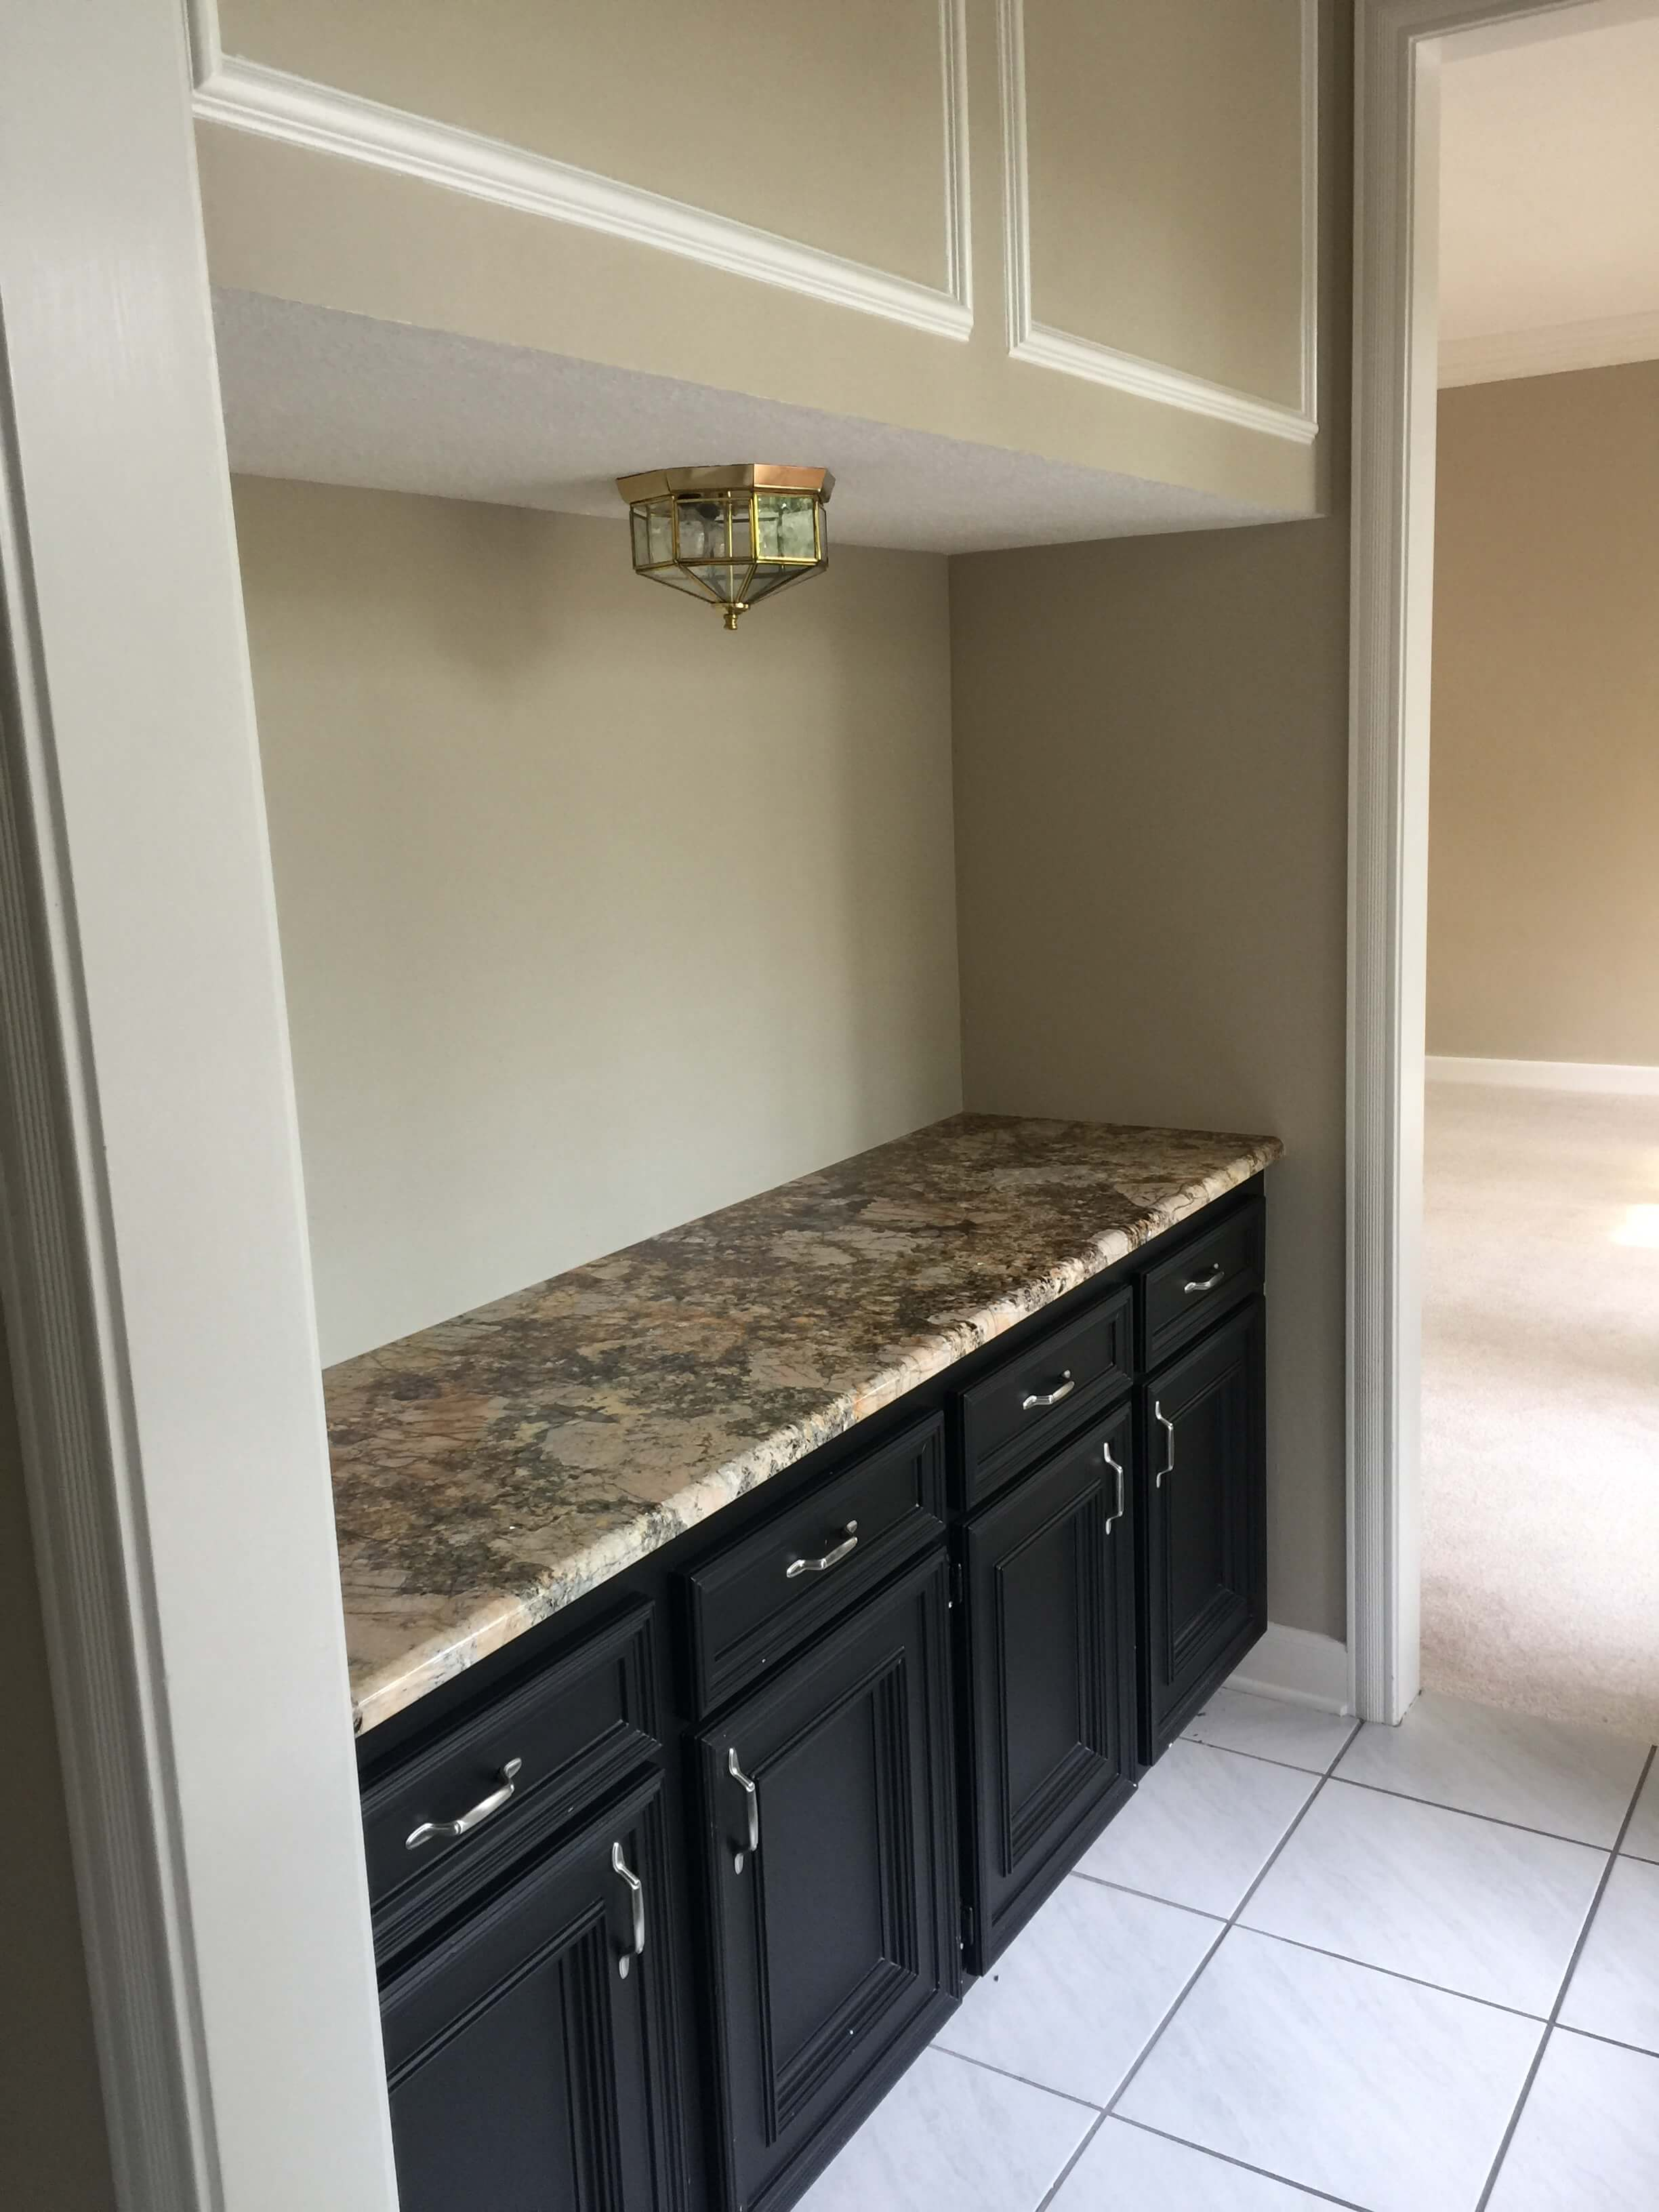 BEFORE - These cabinets under the stairs felt short and squatty because of the landing above. That light fixture was right at about eye level.